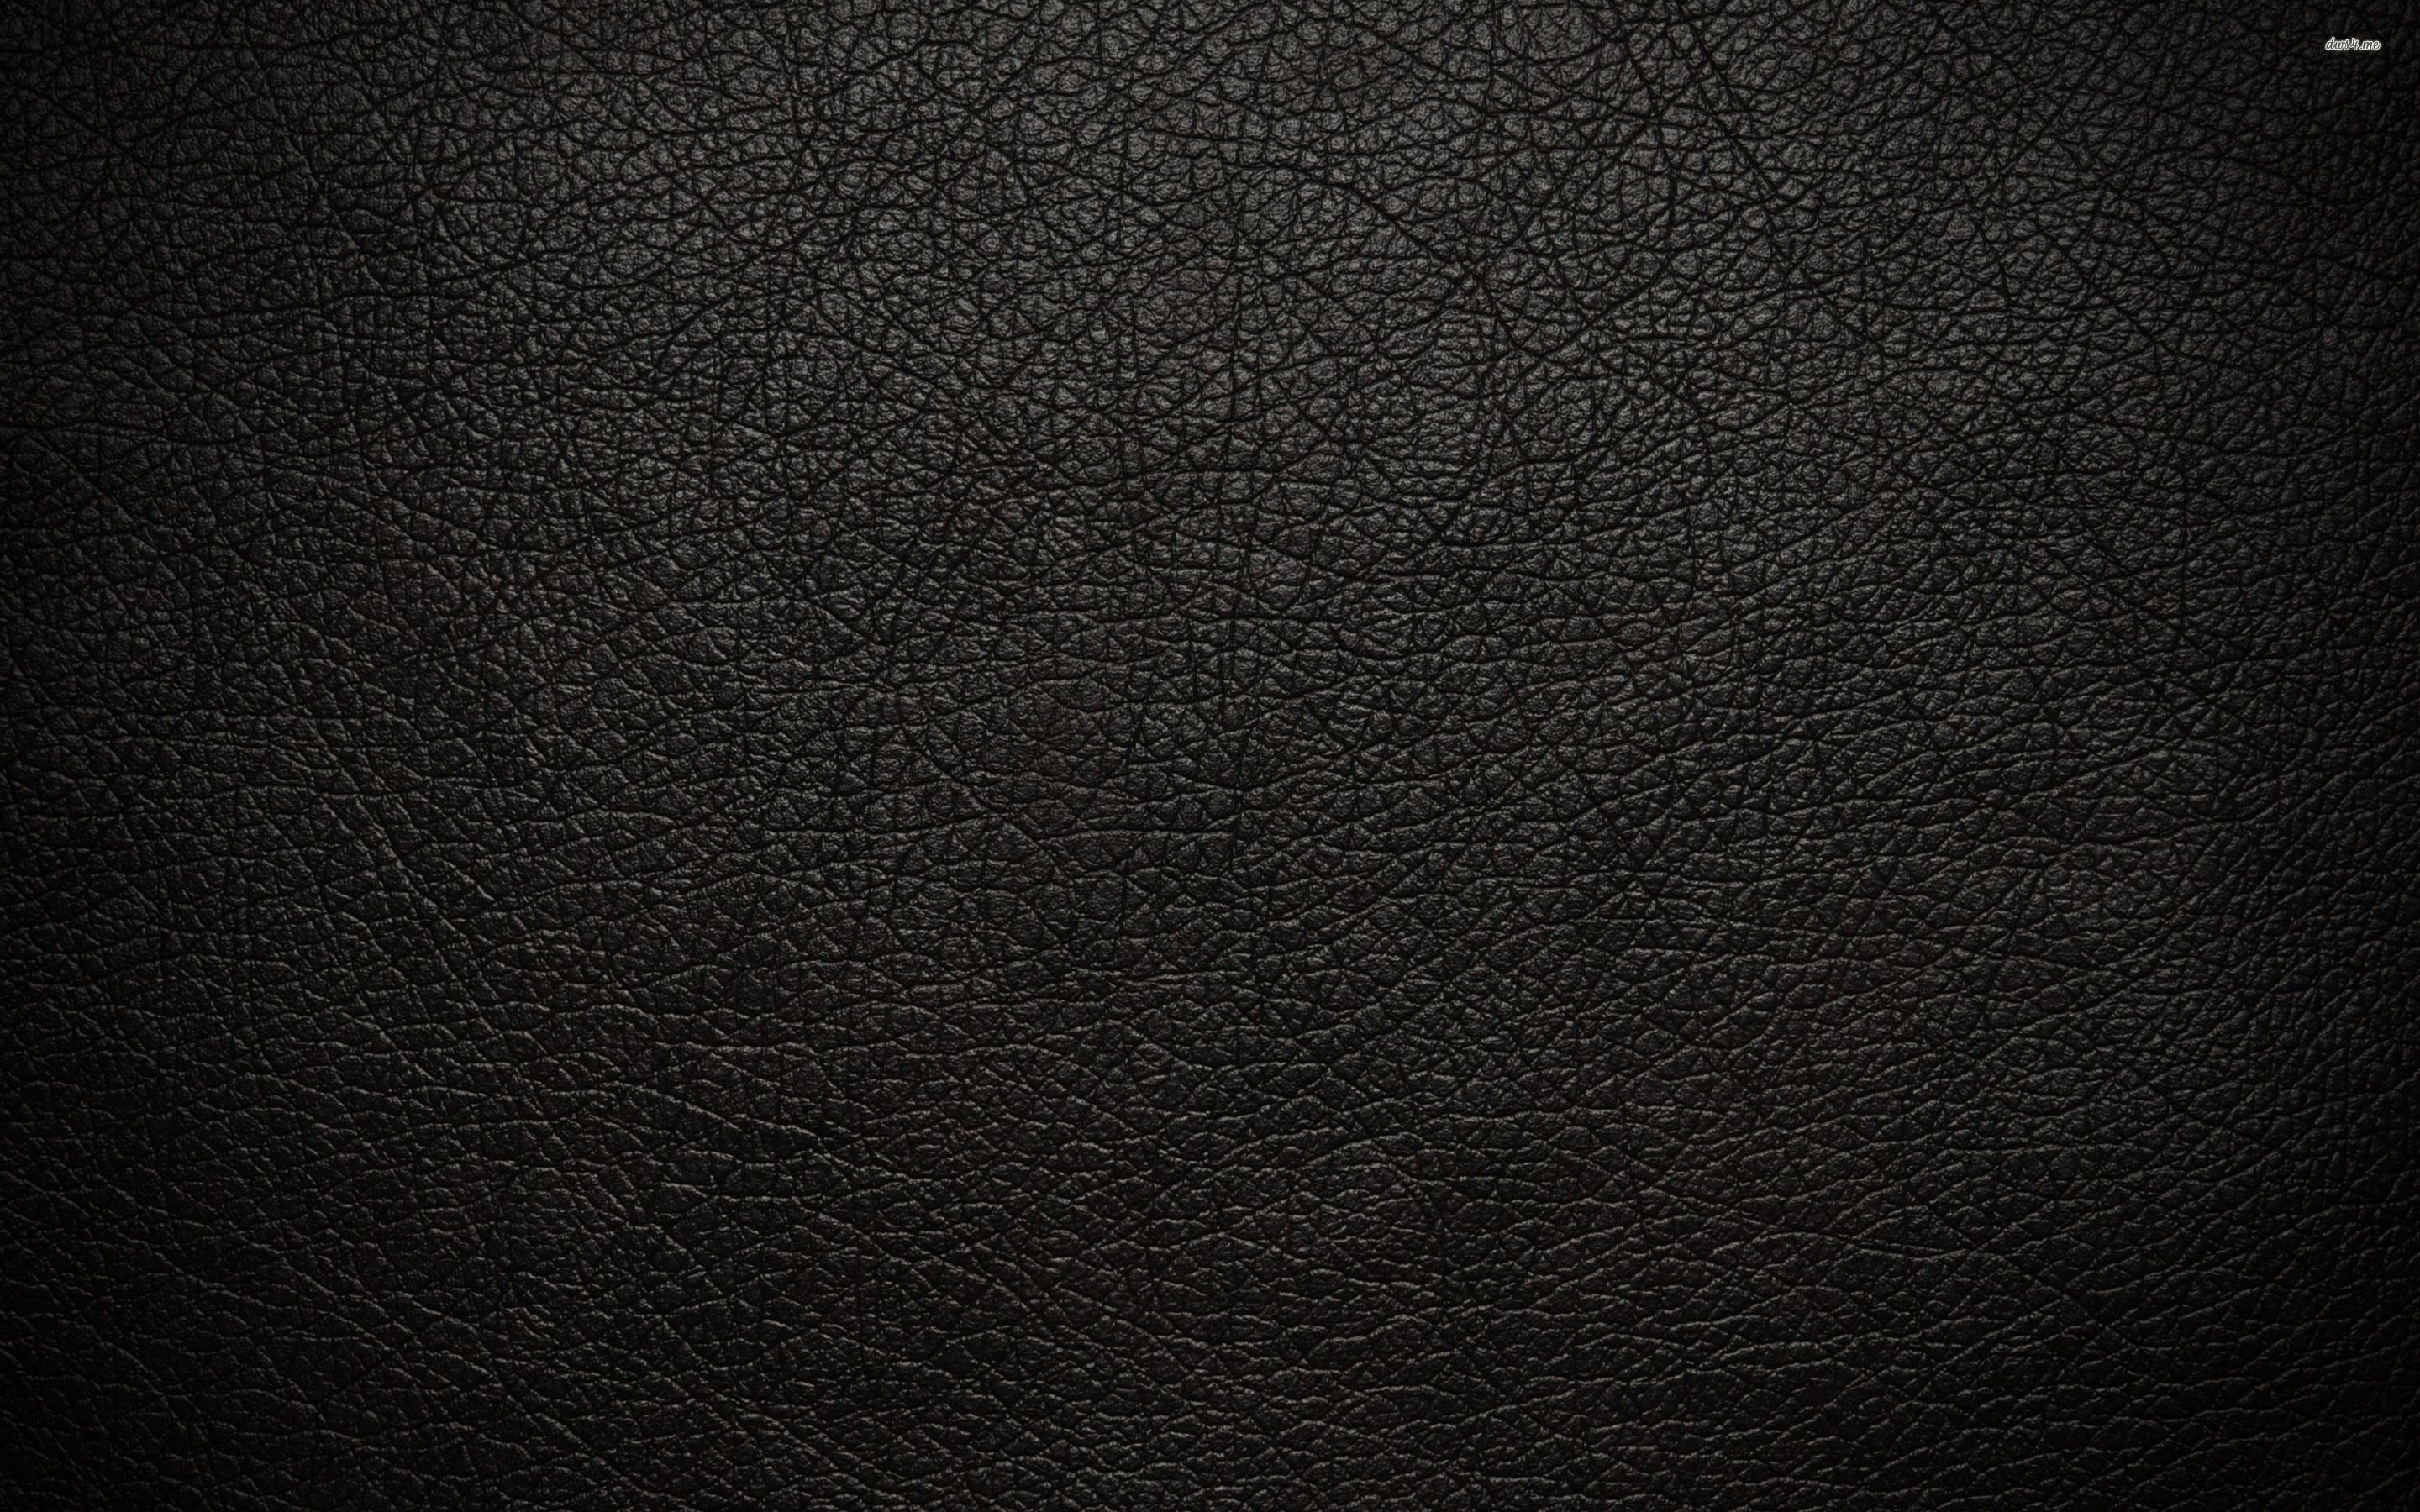 Leather texture wallpaper abstract wallpapers 21220 for Modern textured wallpaper